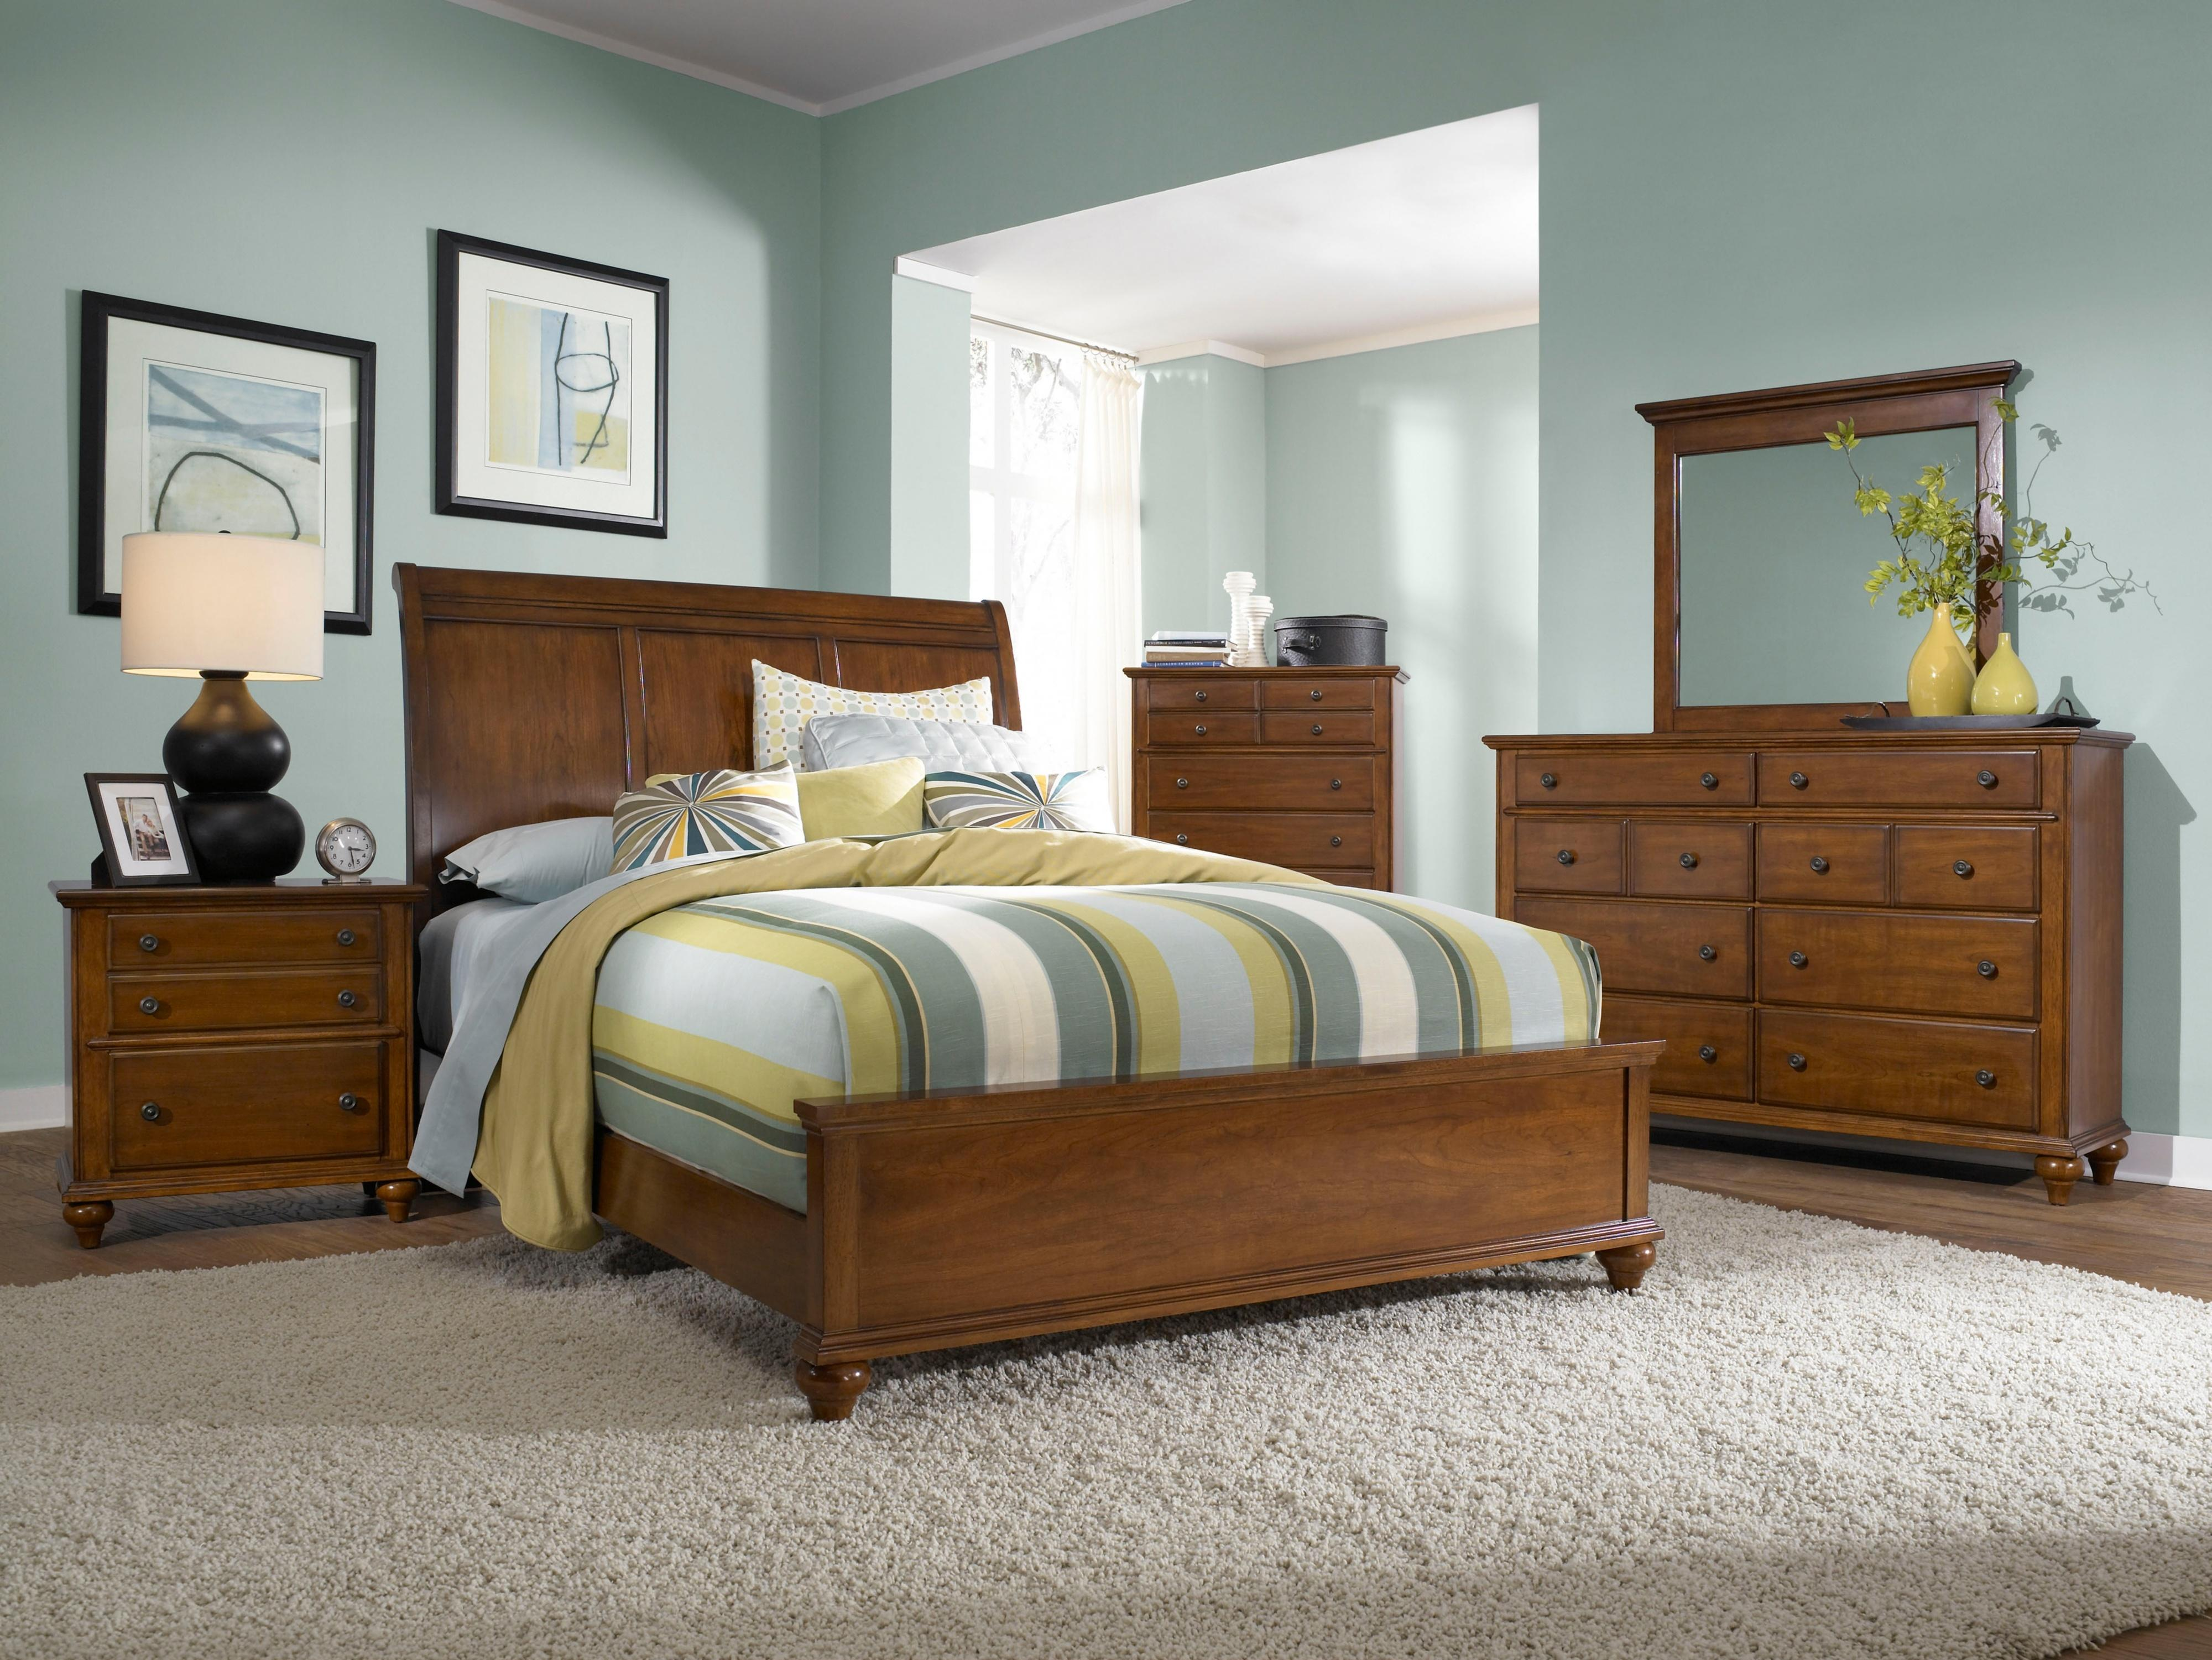 Hayden Place (4648) By Broyhill Furniture